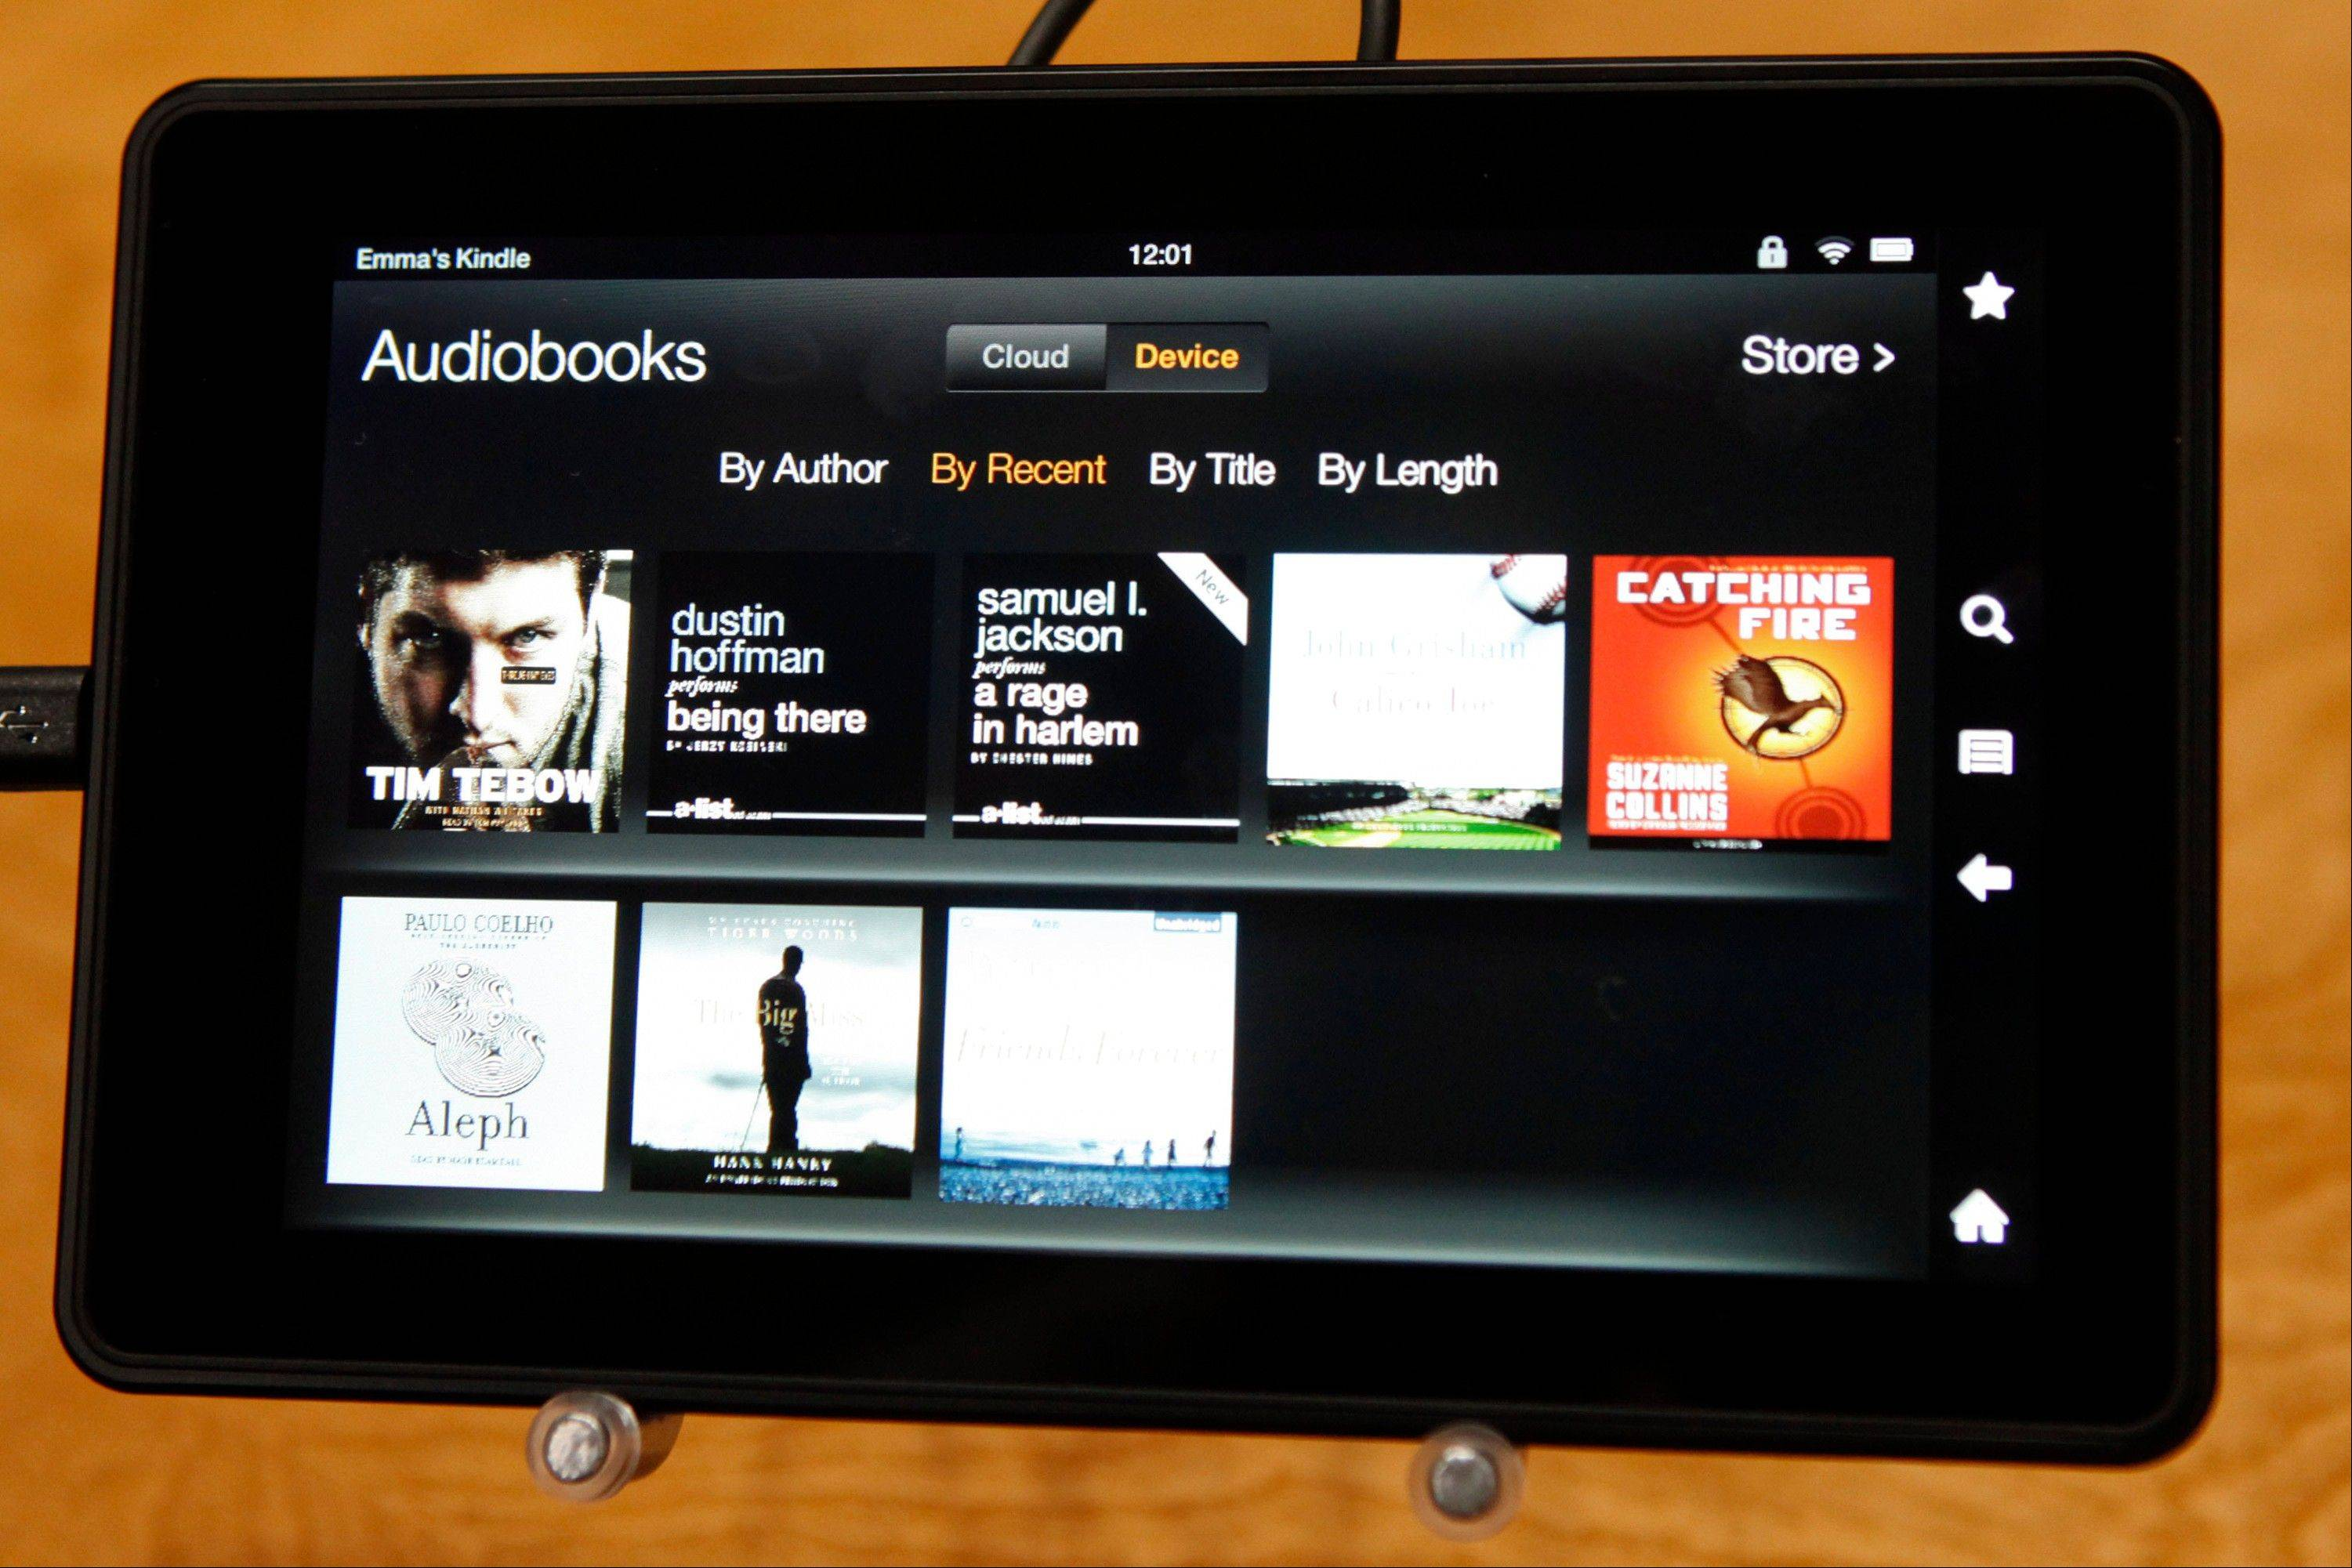 Amazon.com Inc.'s Kindle Fire HD tablet.